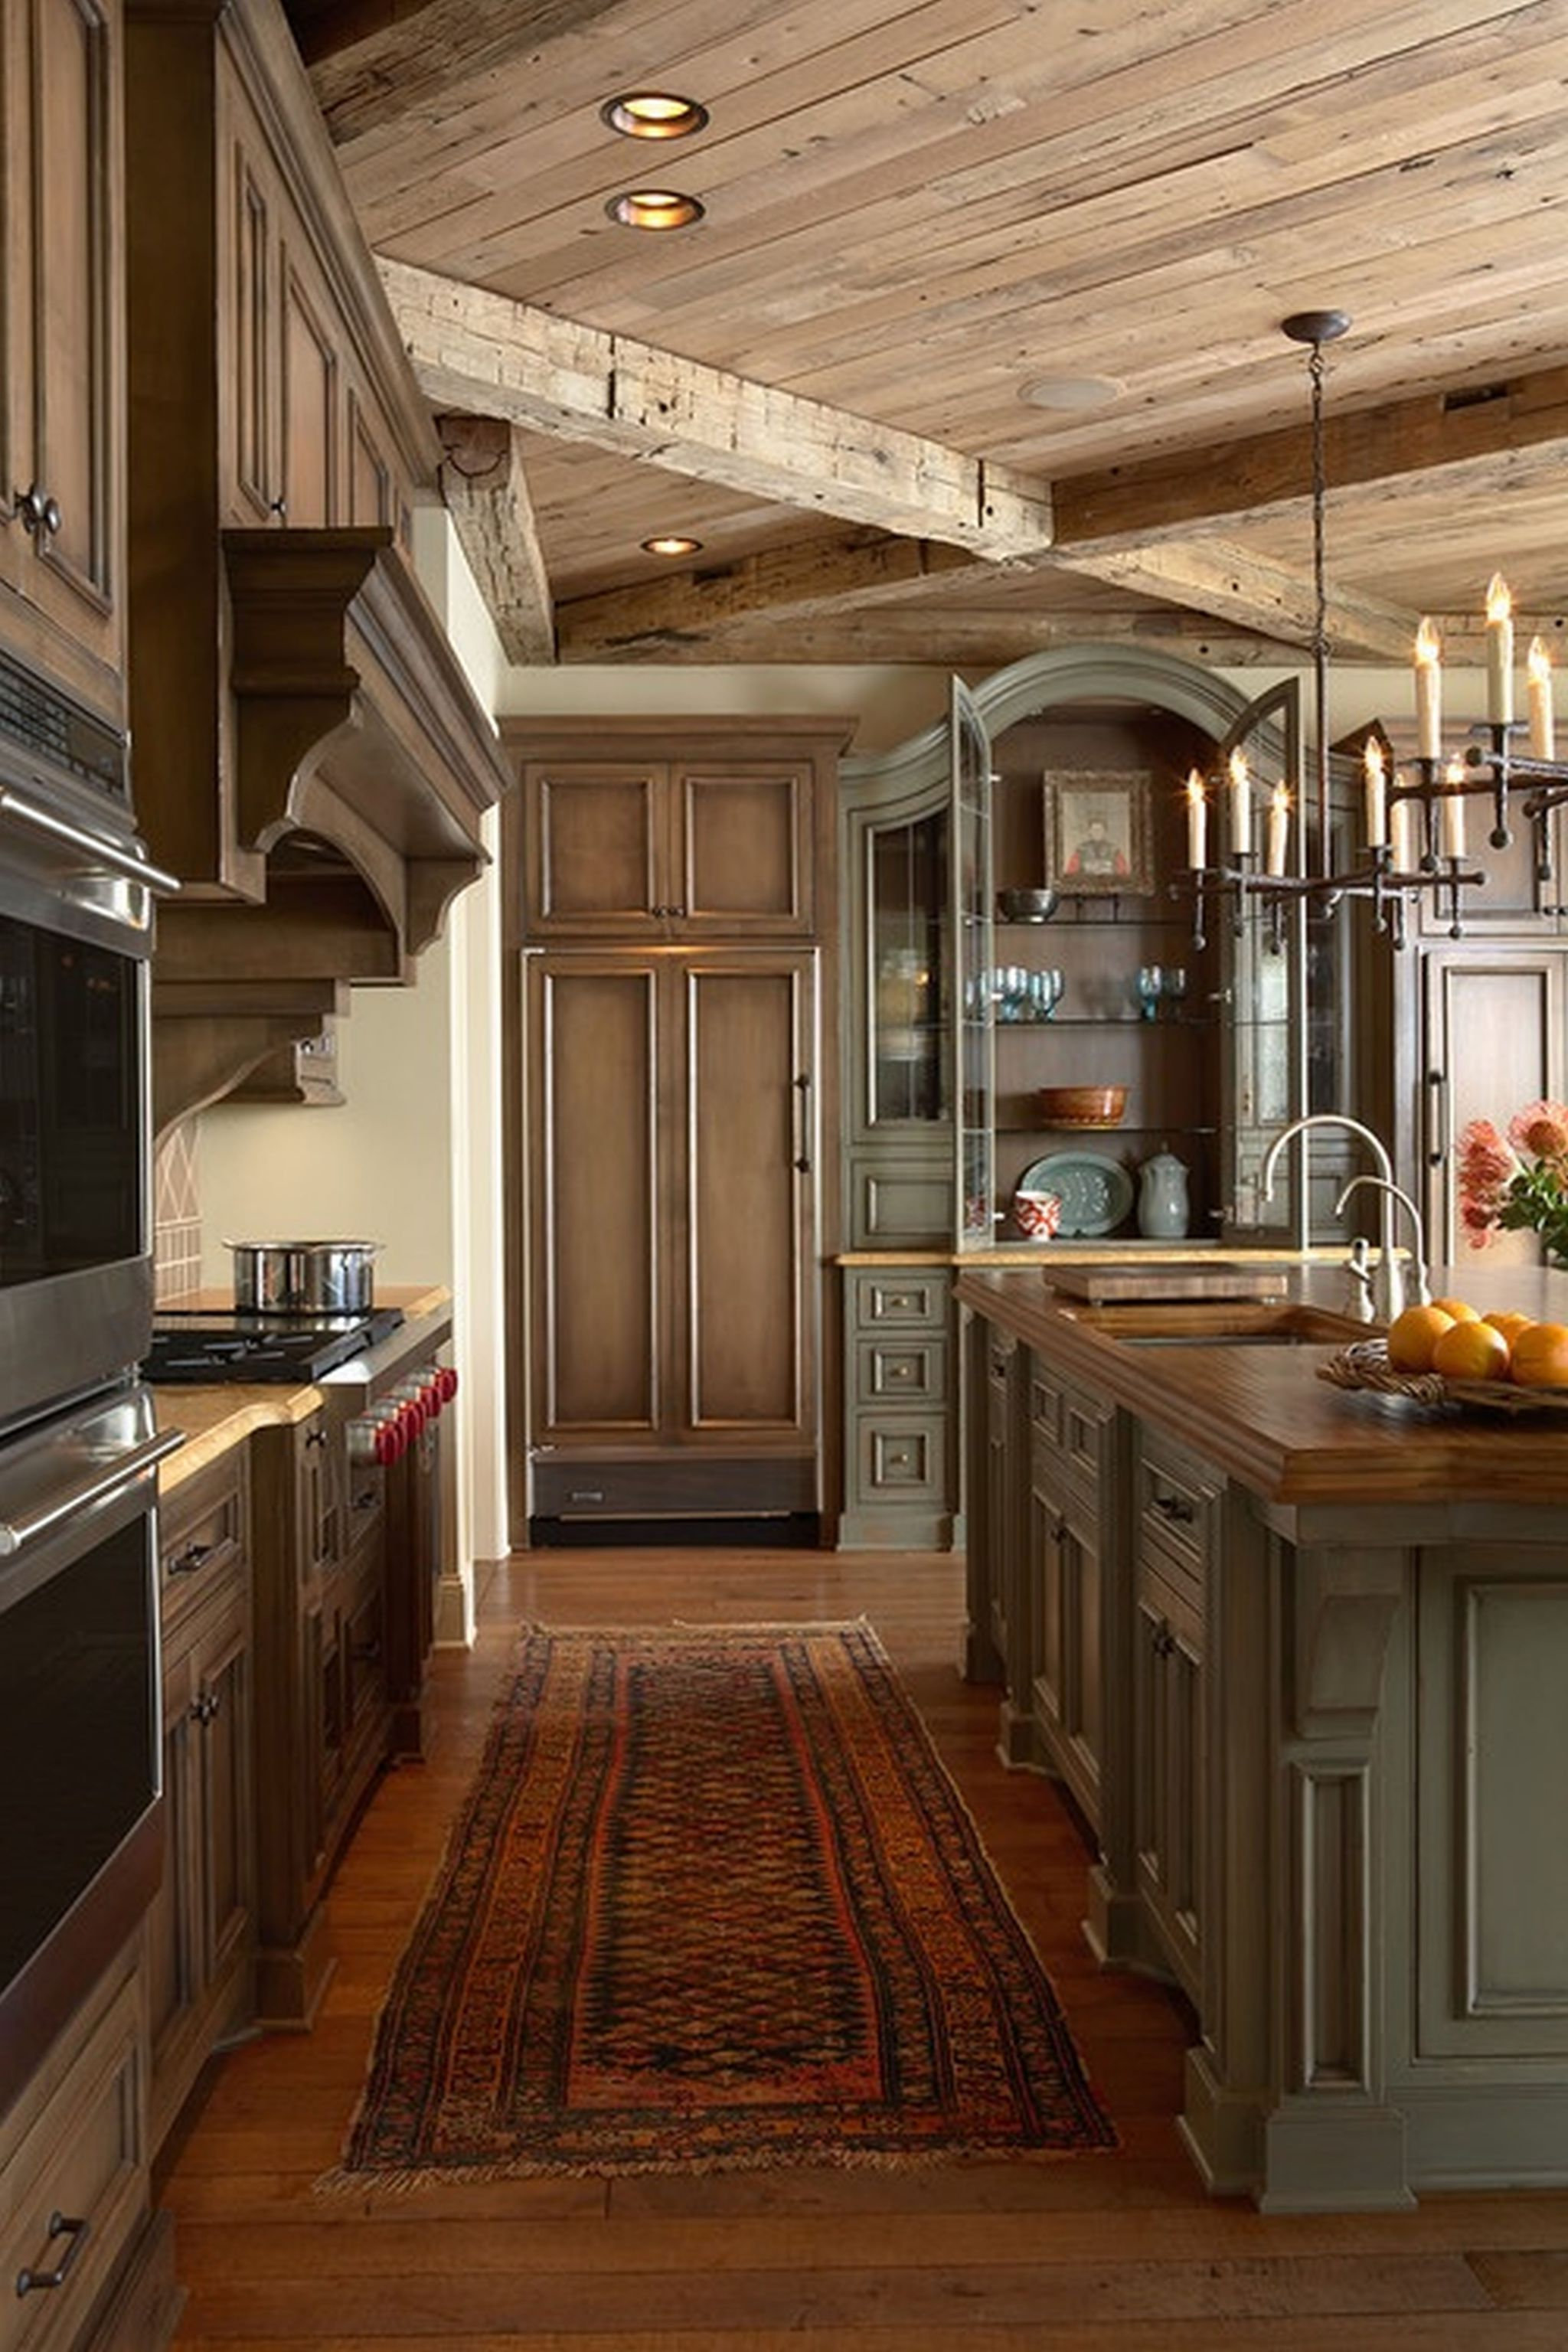 Tantalizing Kitchen Using Rustic Wooden Cabinet and Pendant Light Fixture